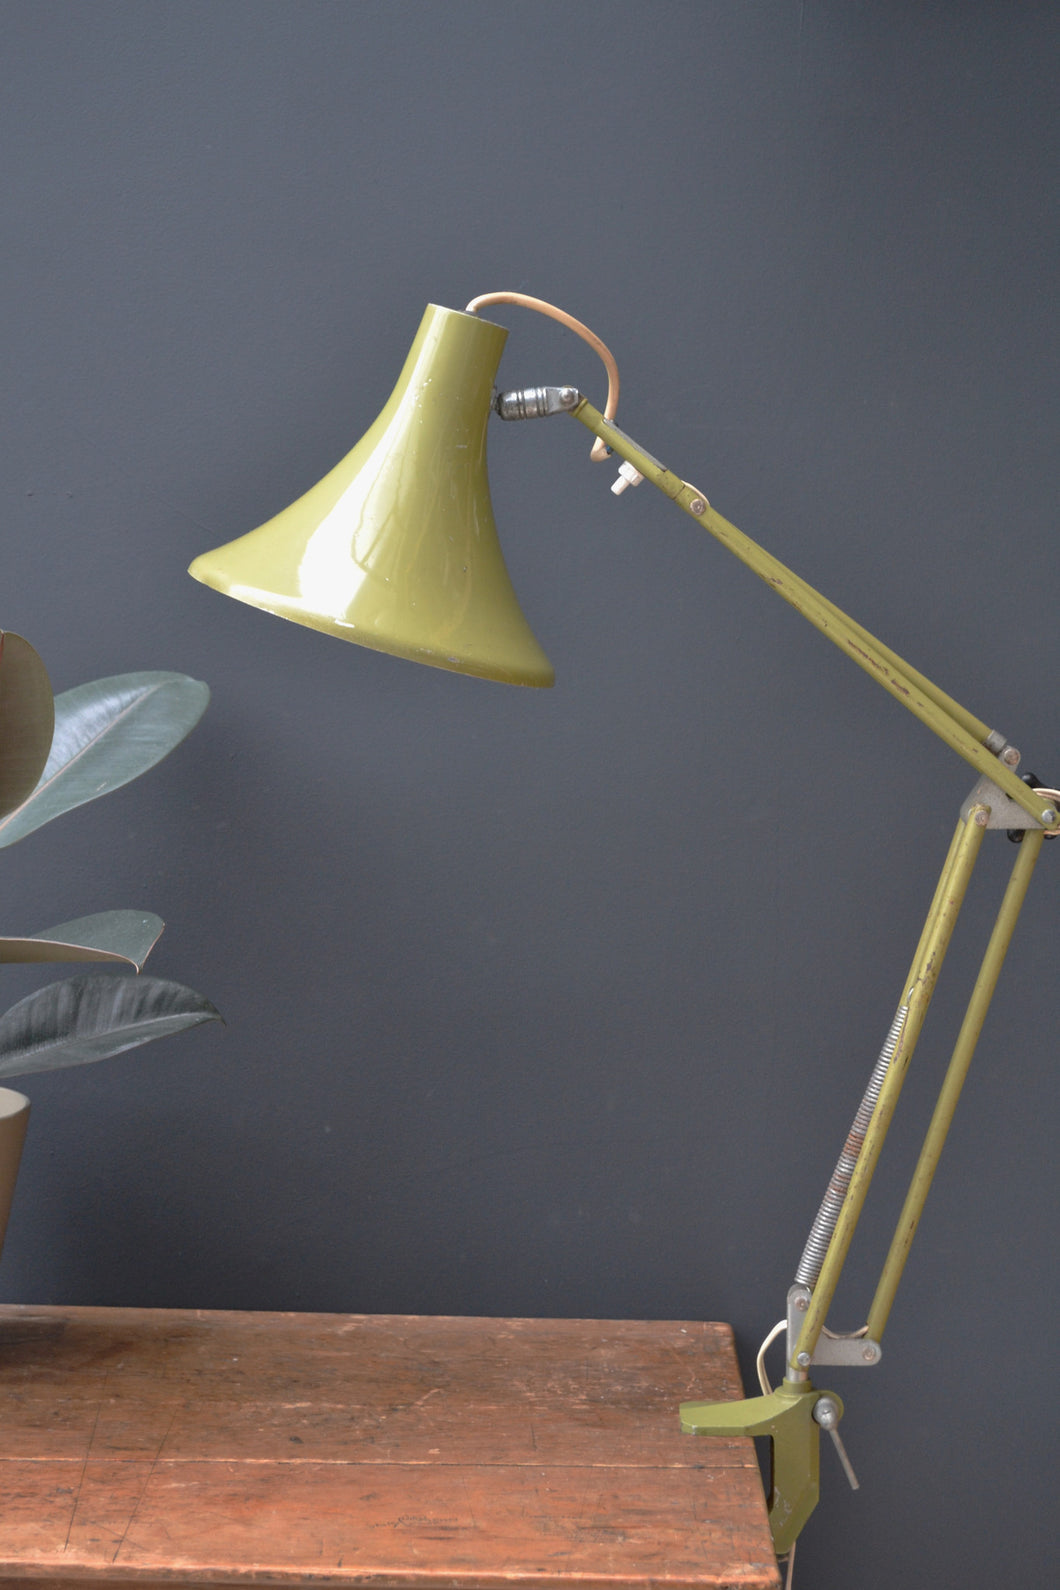 Industrial Anglepoise Clamp Lamp - SOLD